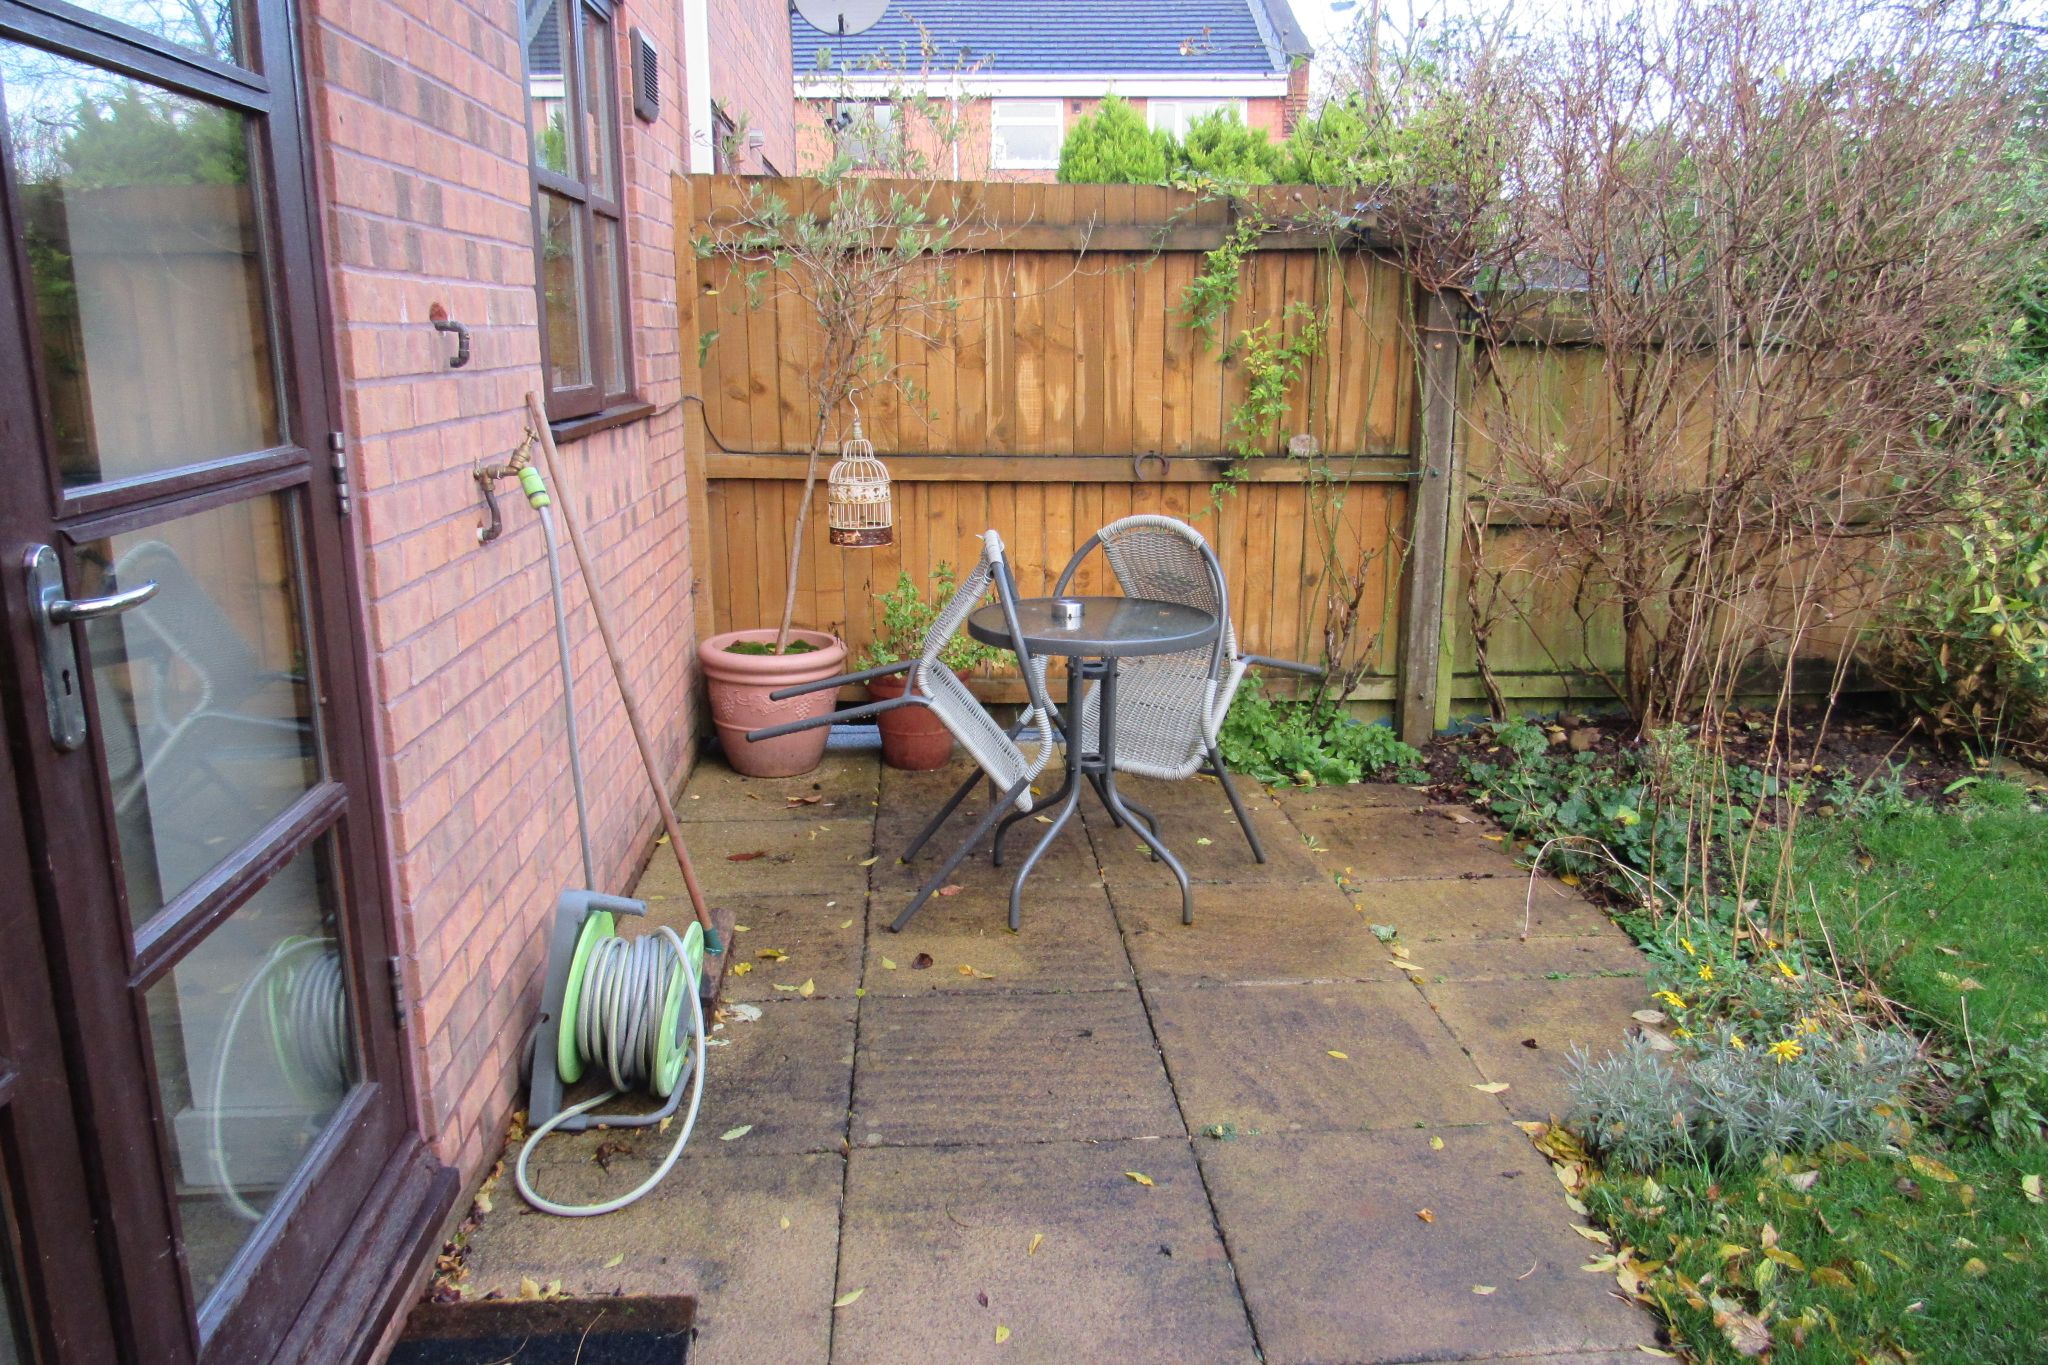 2 bedroom semi-detached house SSTC in Northenden - Photograph 15.